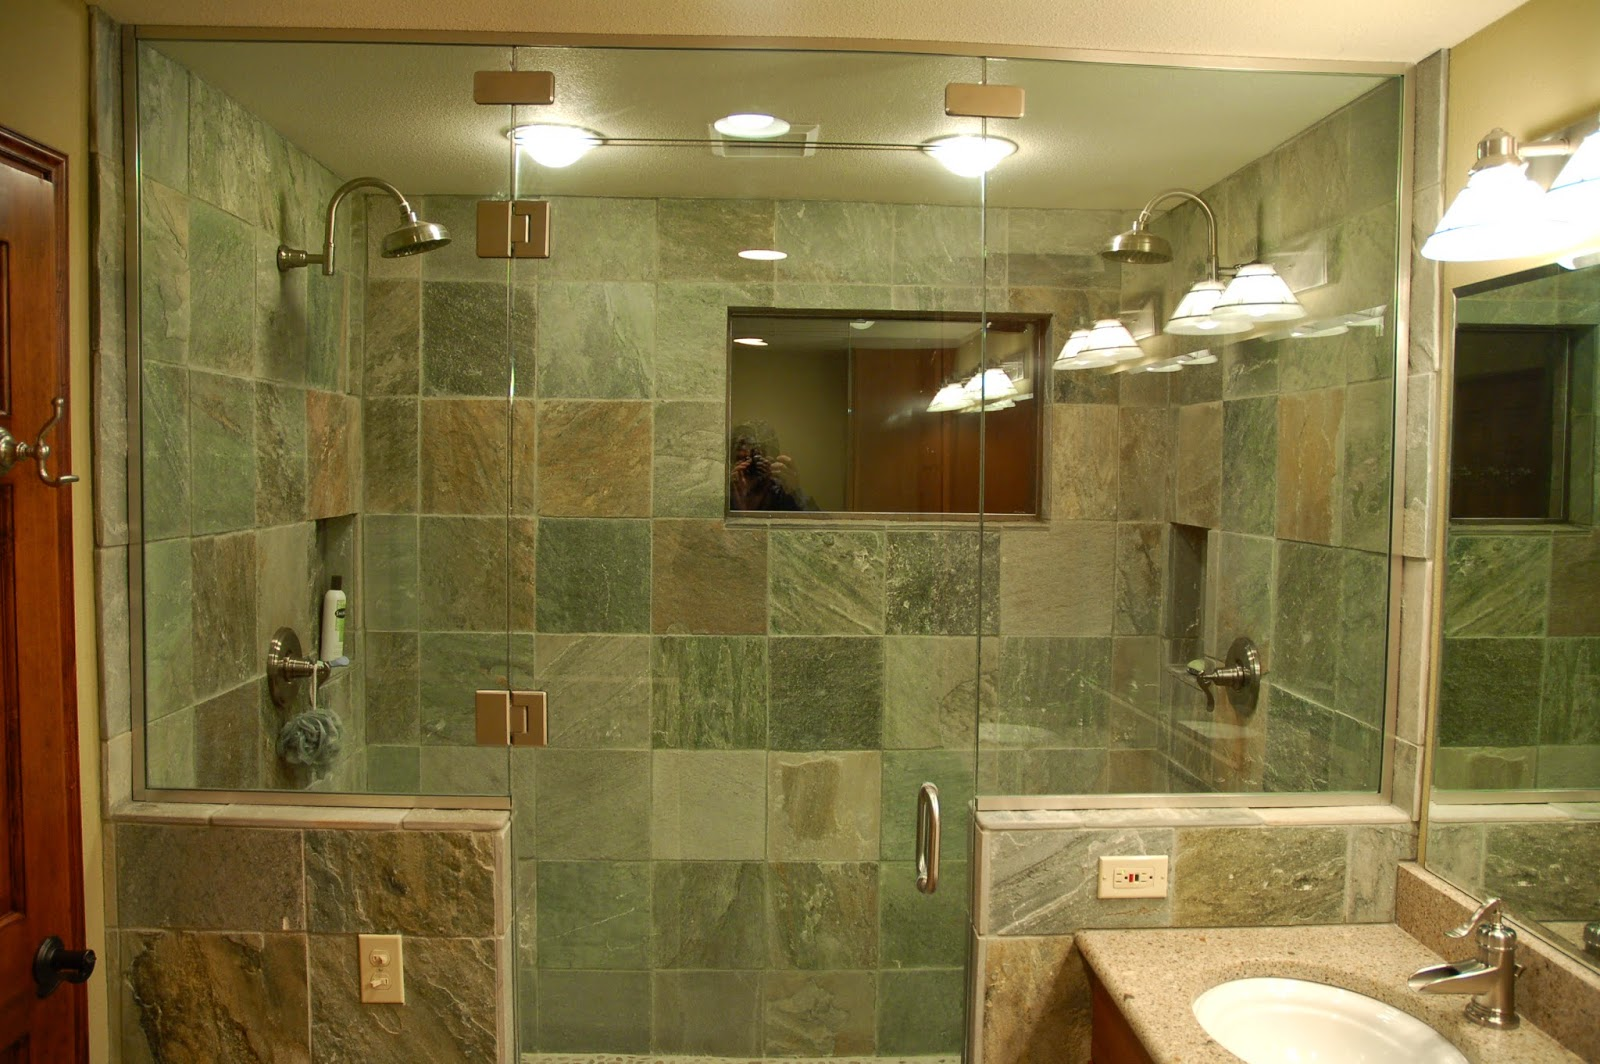 Working With Tile Is An Easy Way To Give Your Bathroom An Upgraded Look.  With So Many Styles To Choose From, You Can Be Sure To Find The Right  Pieces To ...